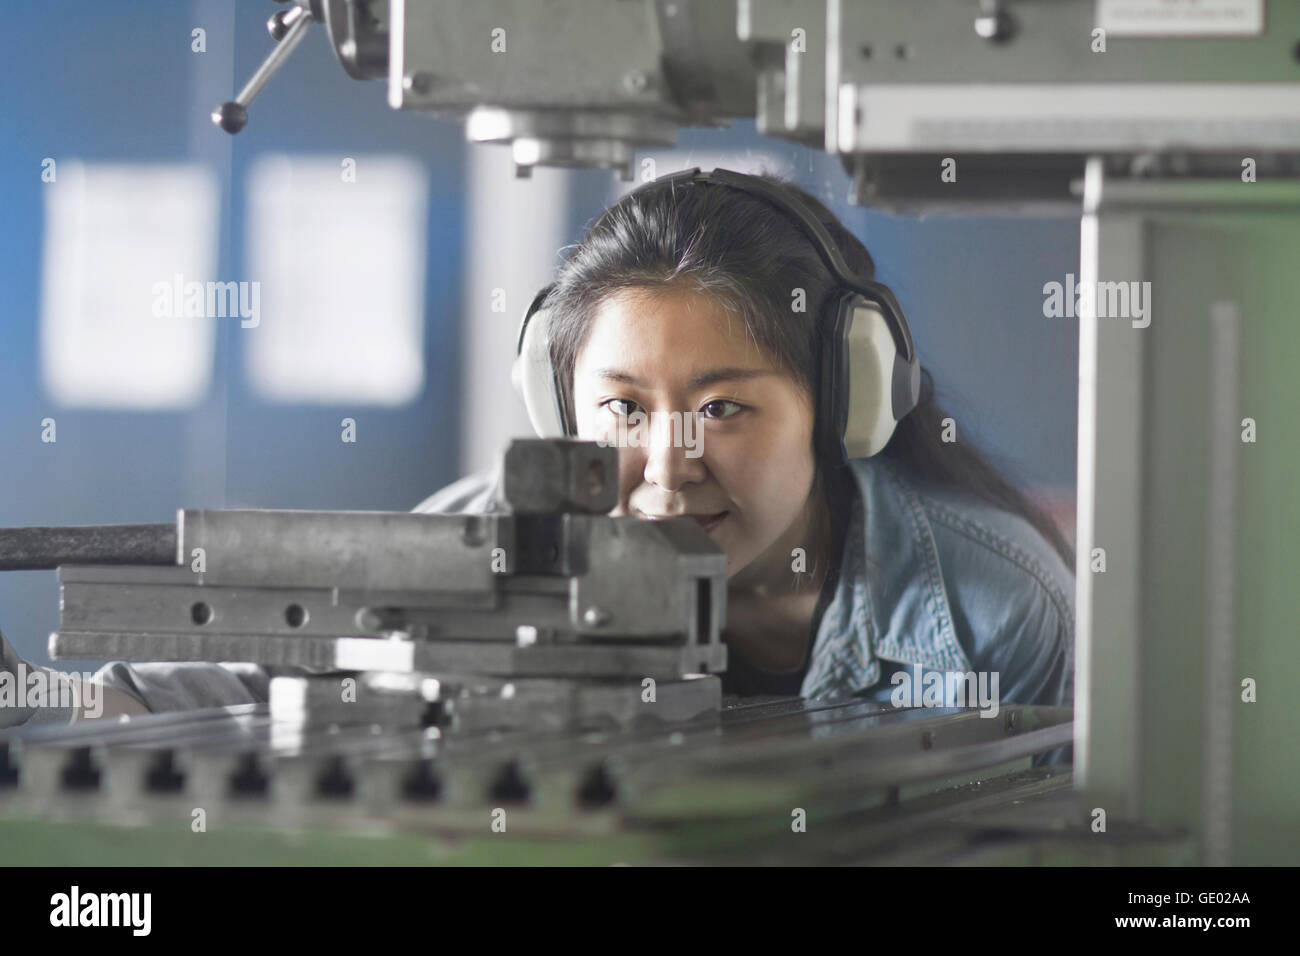 Young female engineer wearing headphones and working in an industrial plant, Freiburg im Breisgau, Baden-Württemberg, Stock Photo